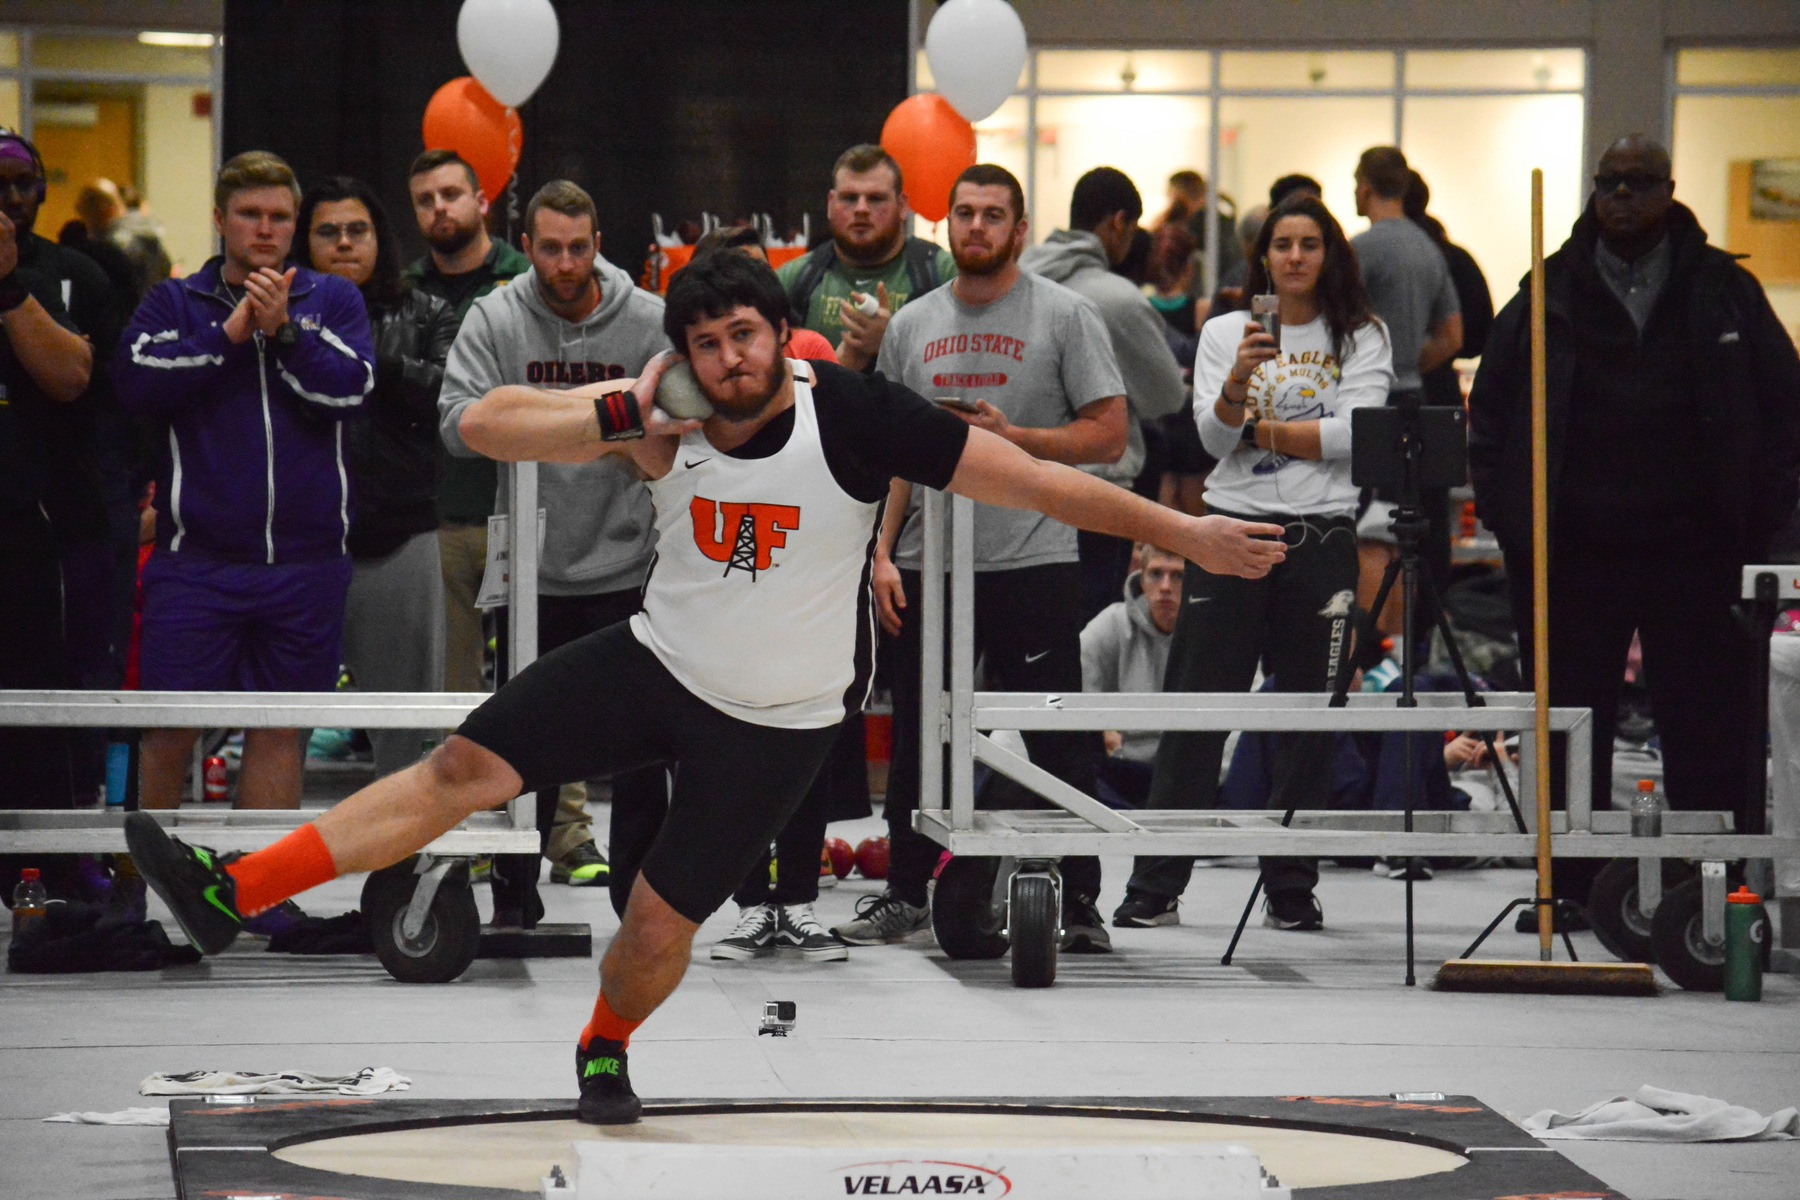 2017 Indoor T&F Nationals Come to a Close